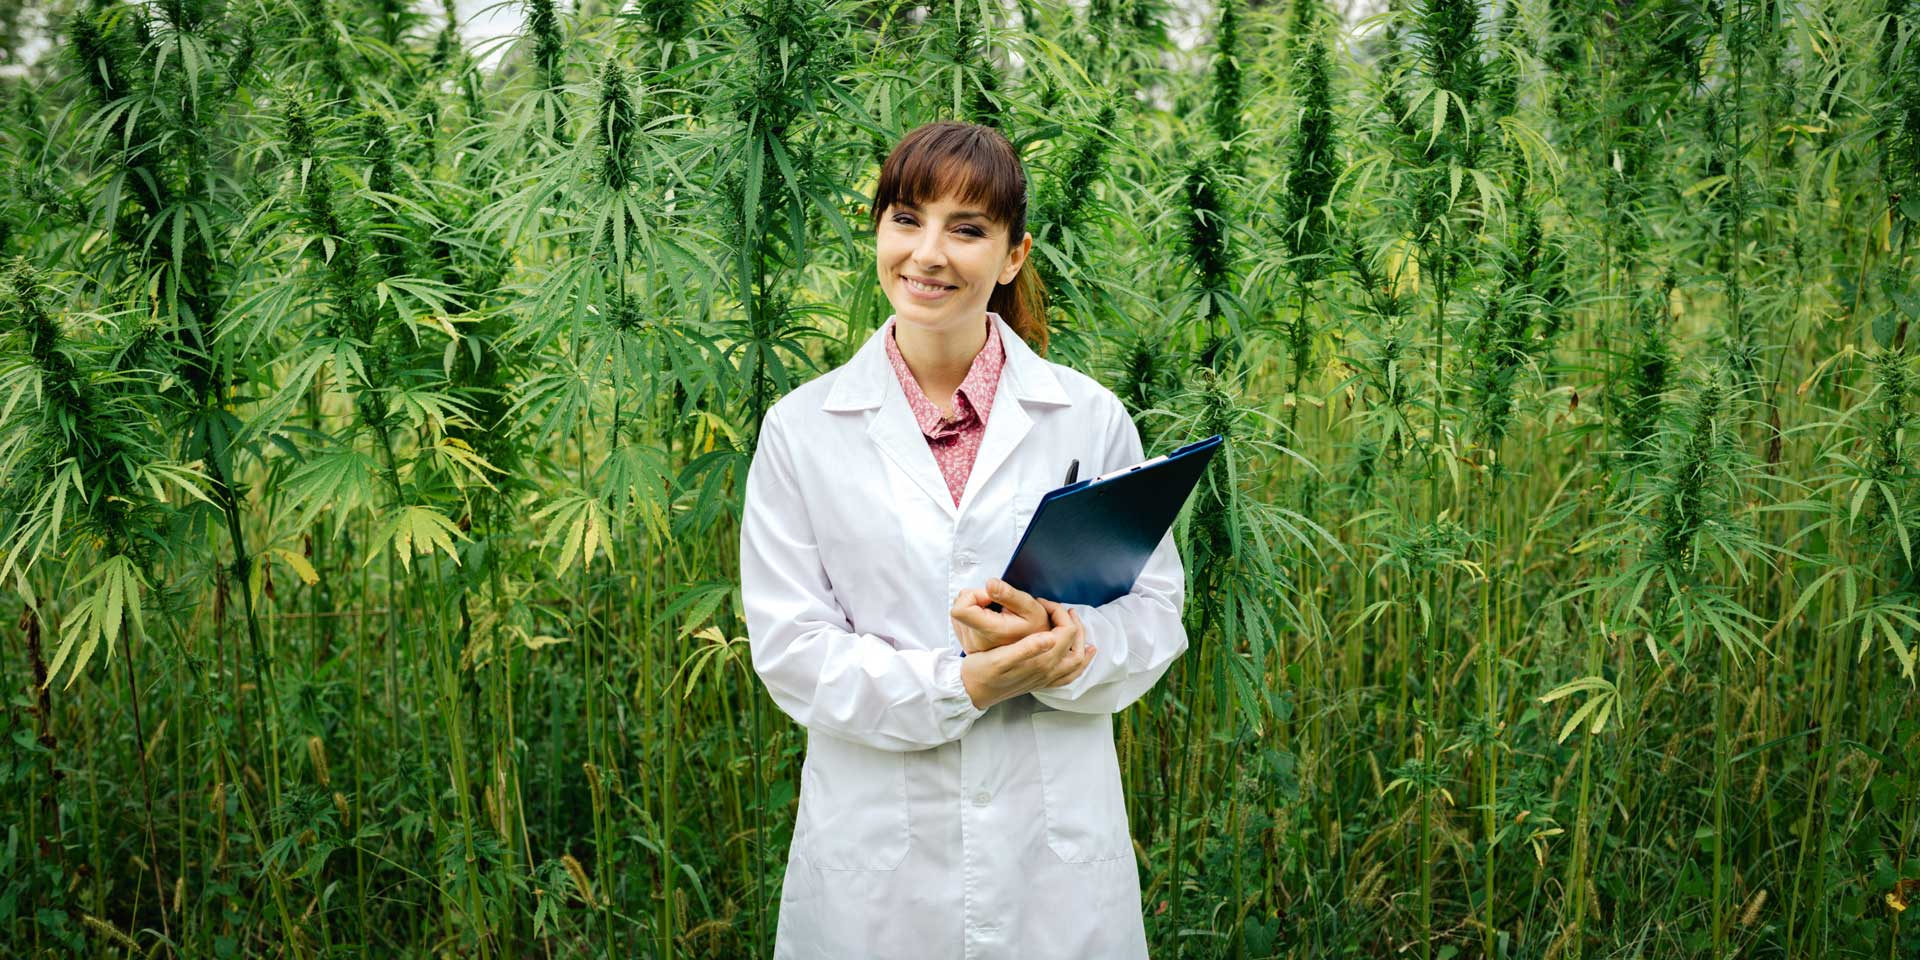 Studying and understanding cannabis and its processes is key in passing safe legislation.